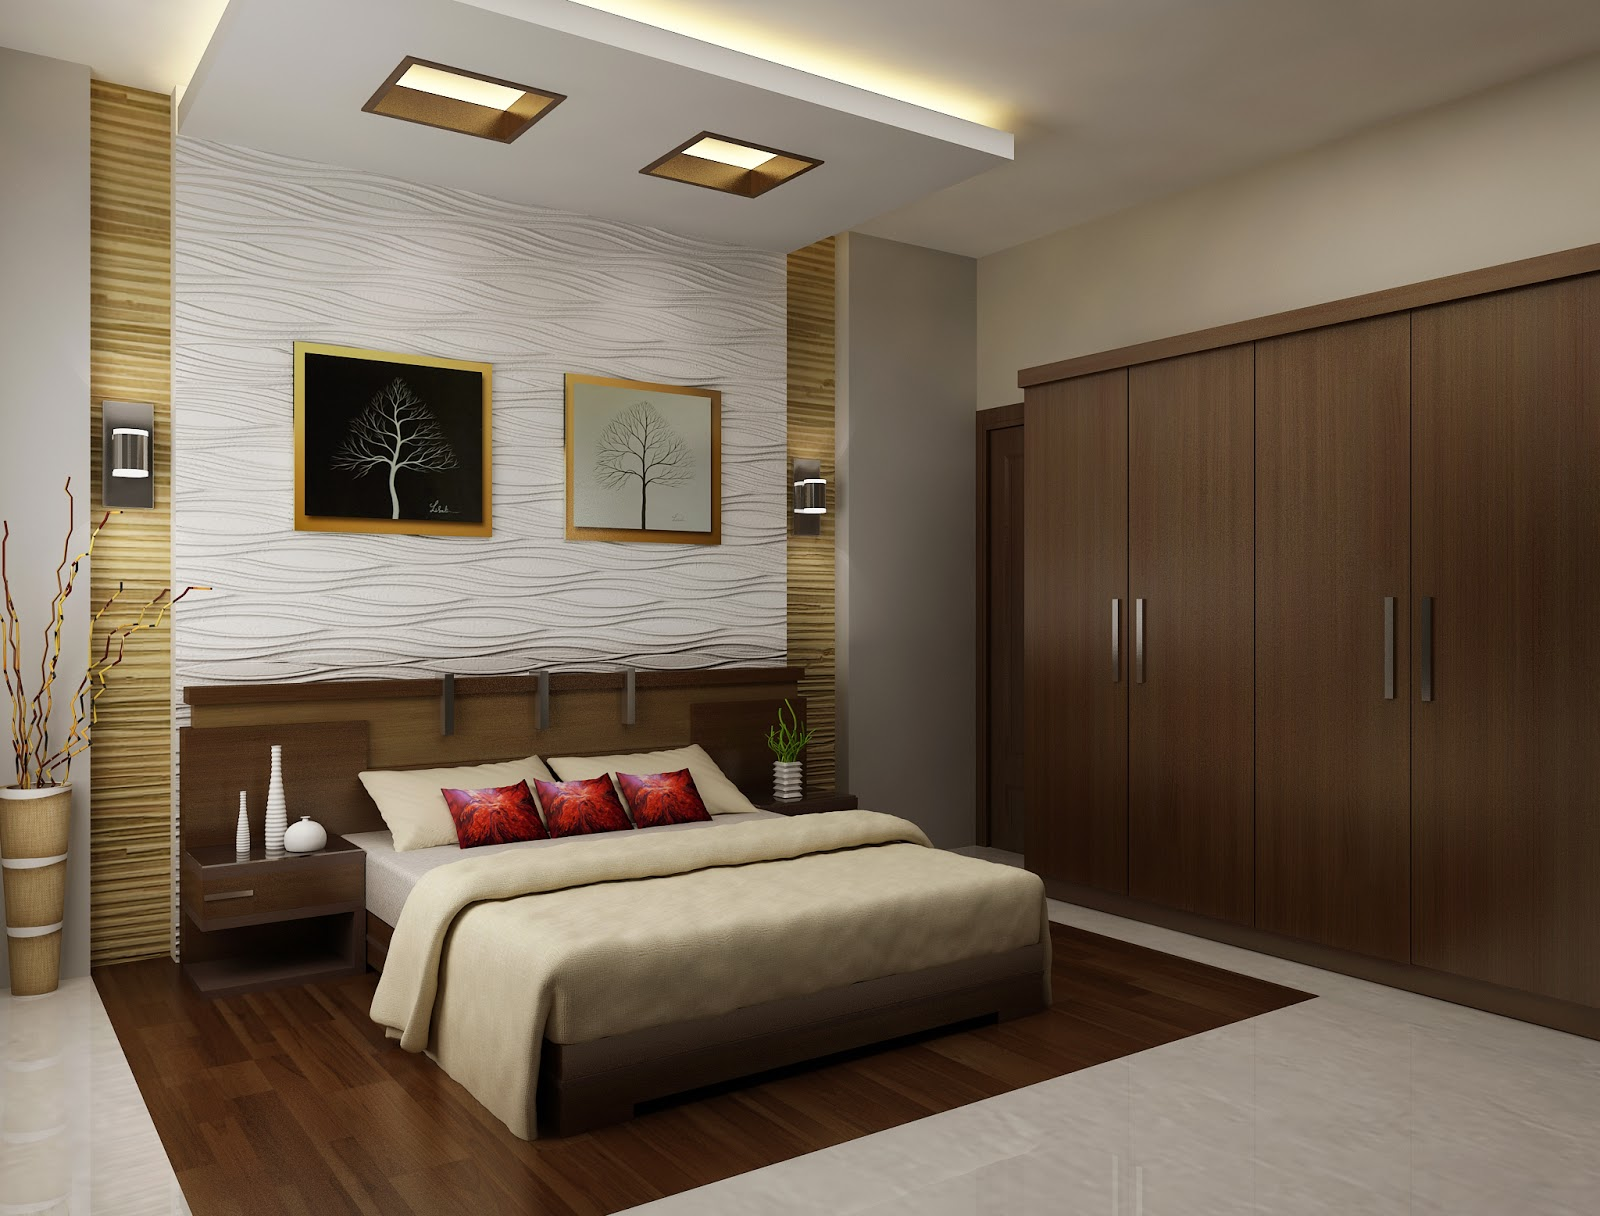 Kerala Interior Design Bedroom Home Design Interior Decoration